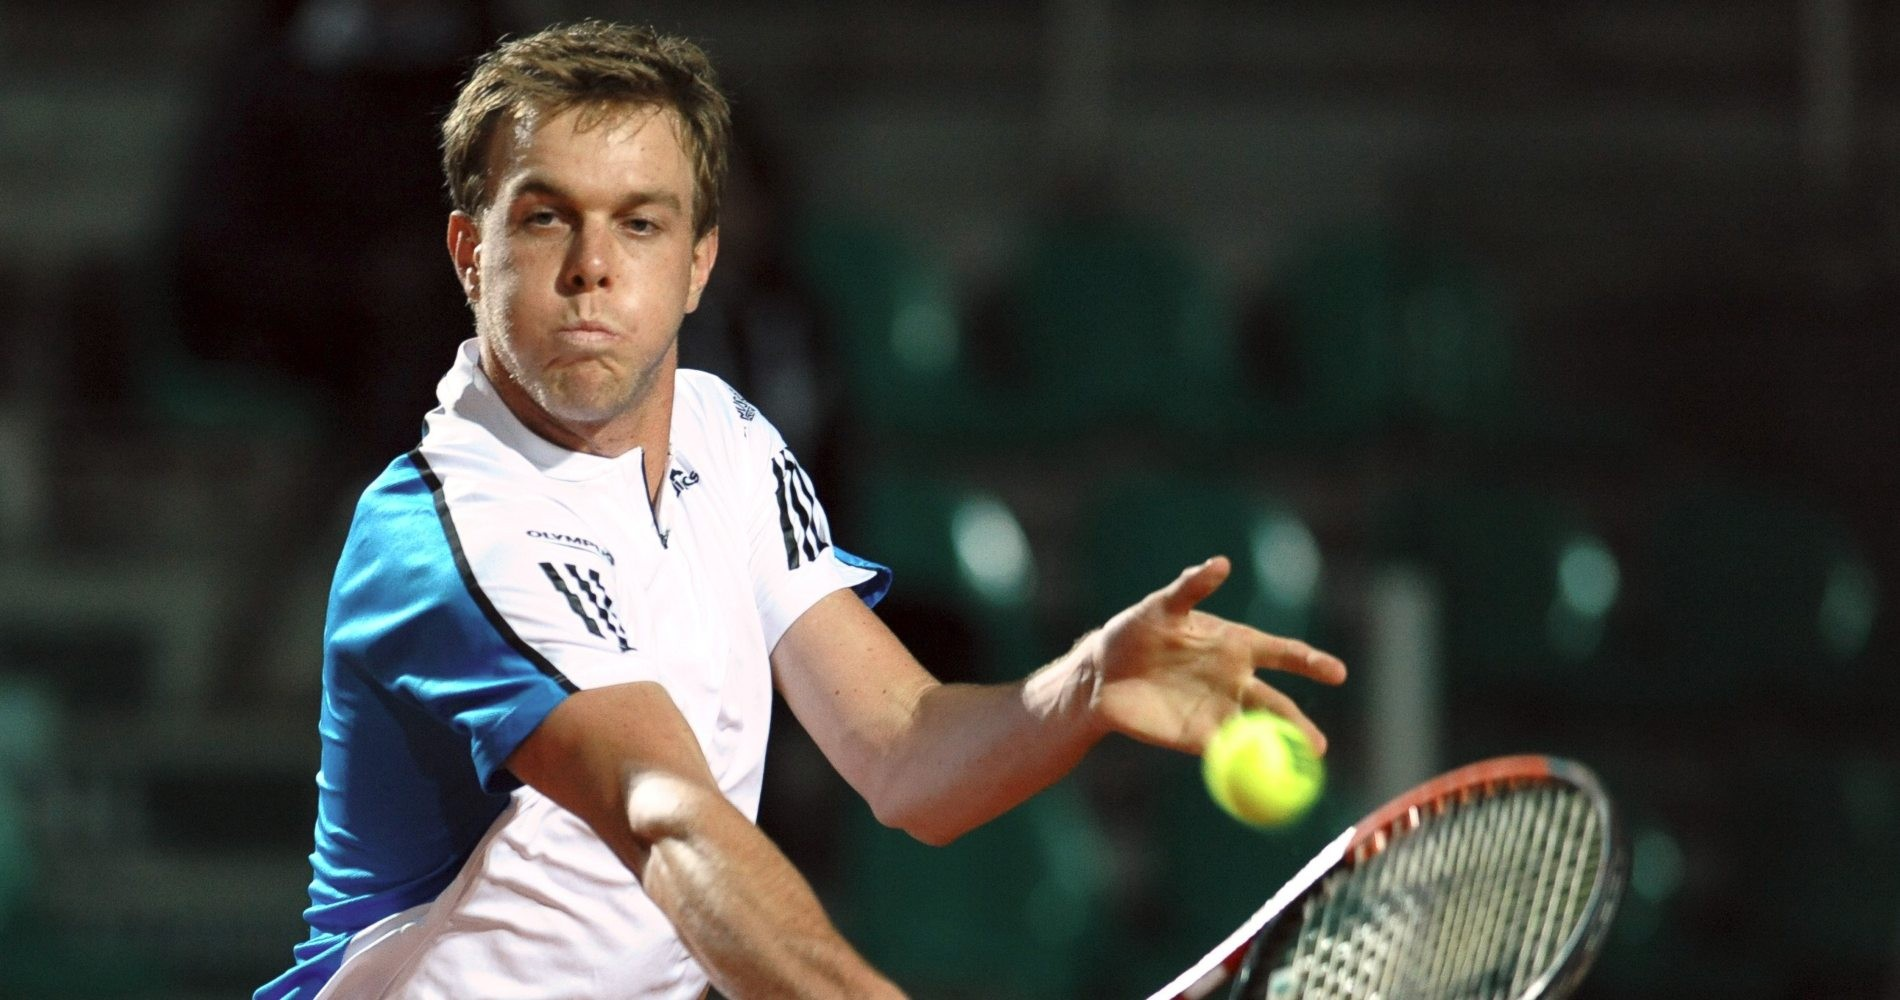 Sam Querrey - On this day